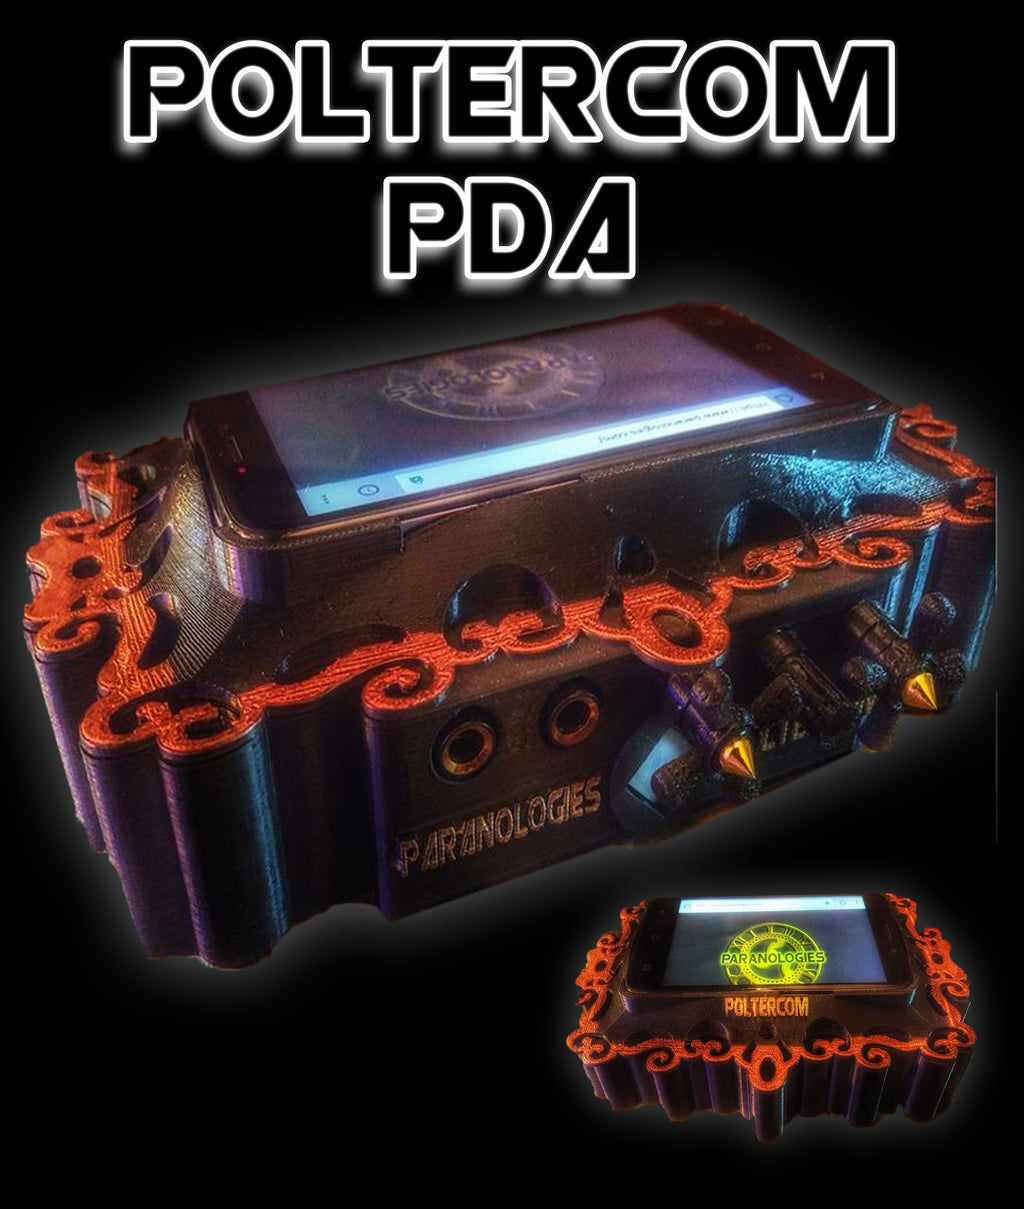 Poltercom PDA ITC Ghost Hunting App Assistant